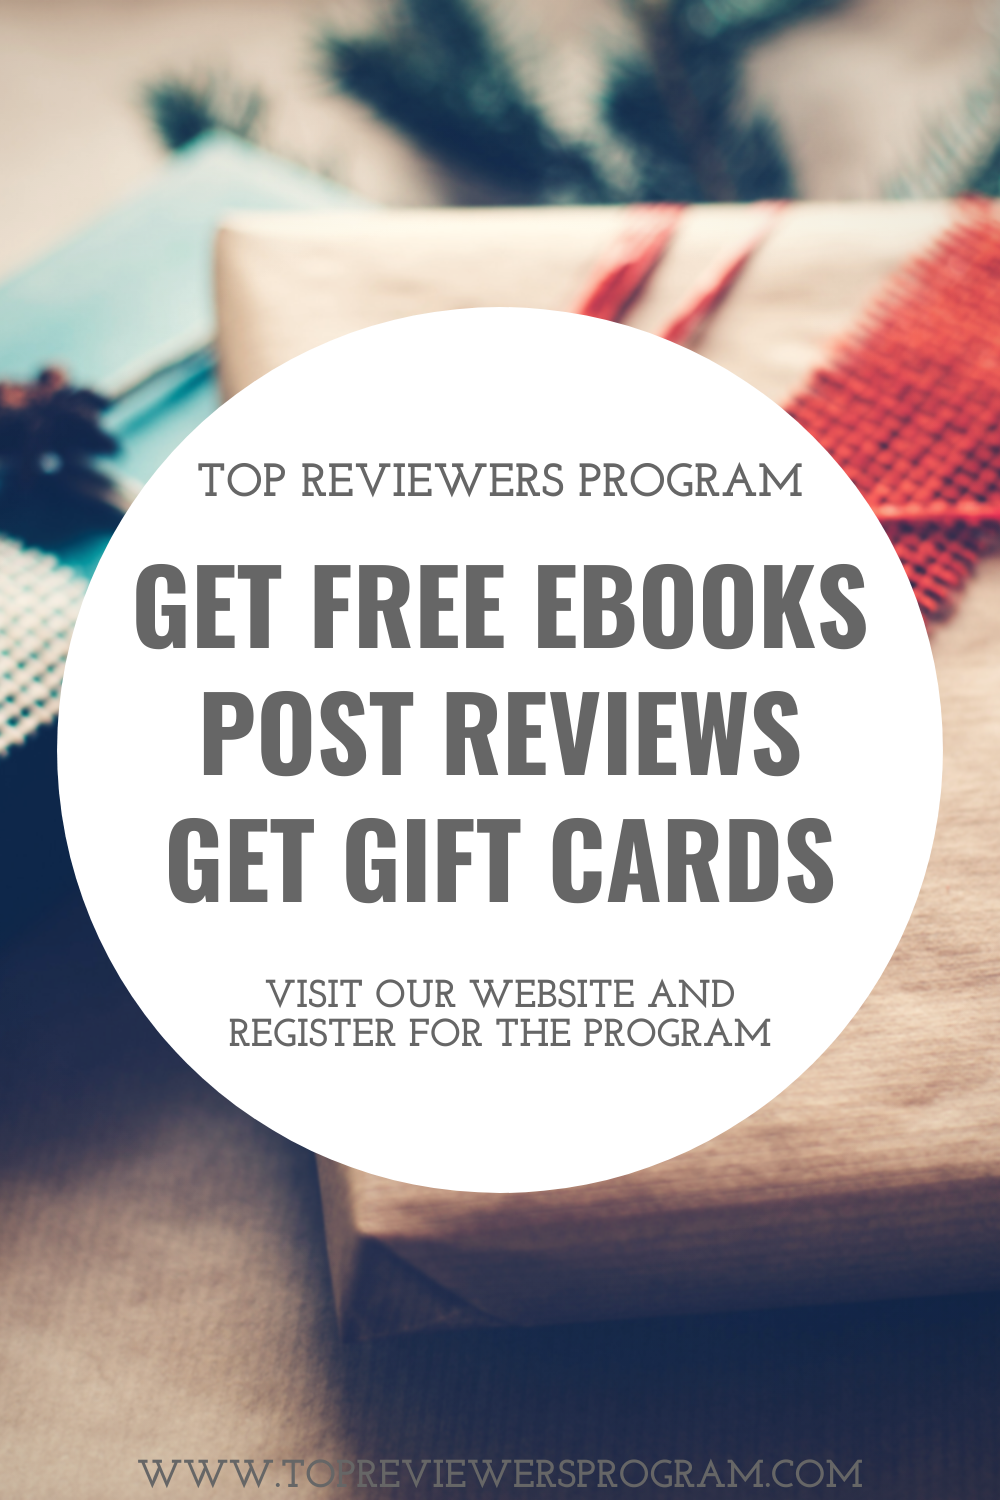 Visit our website and join the Top Reviewers Program